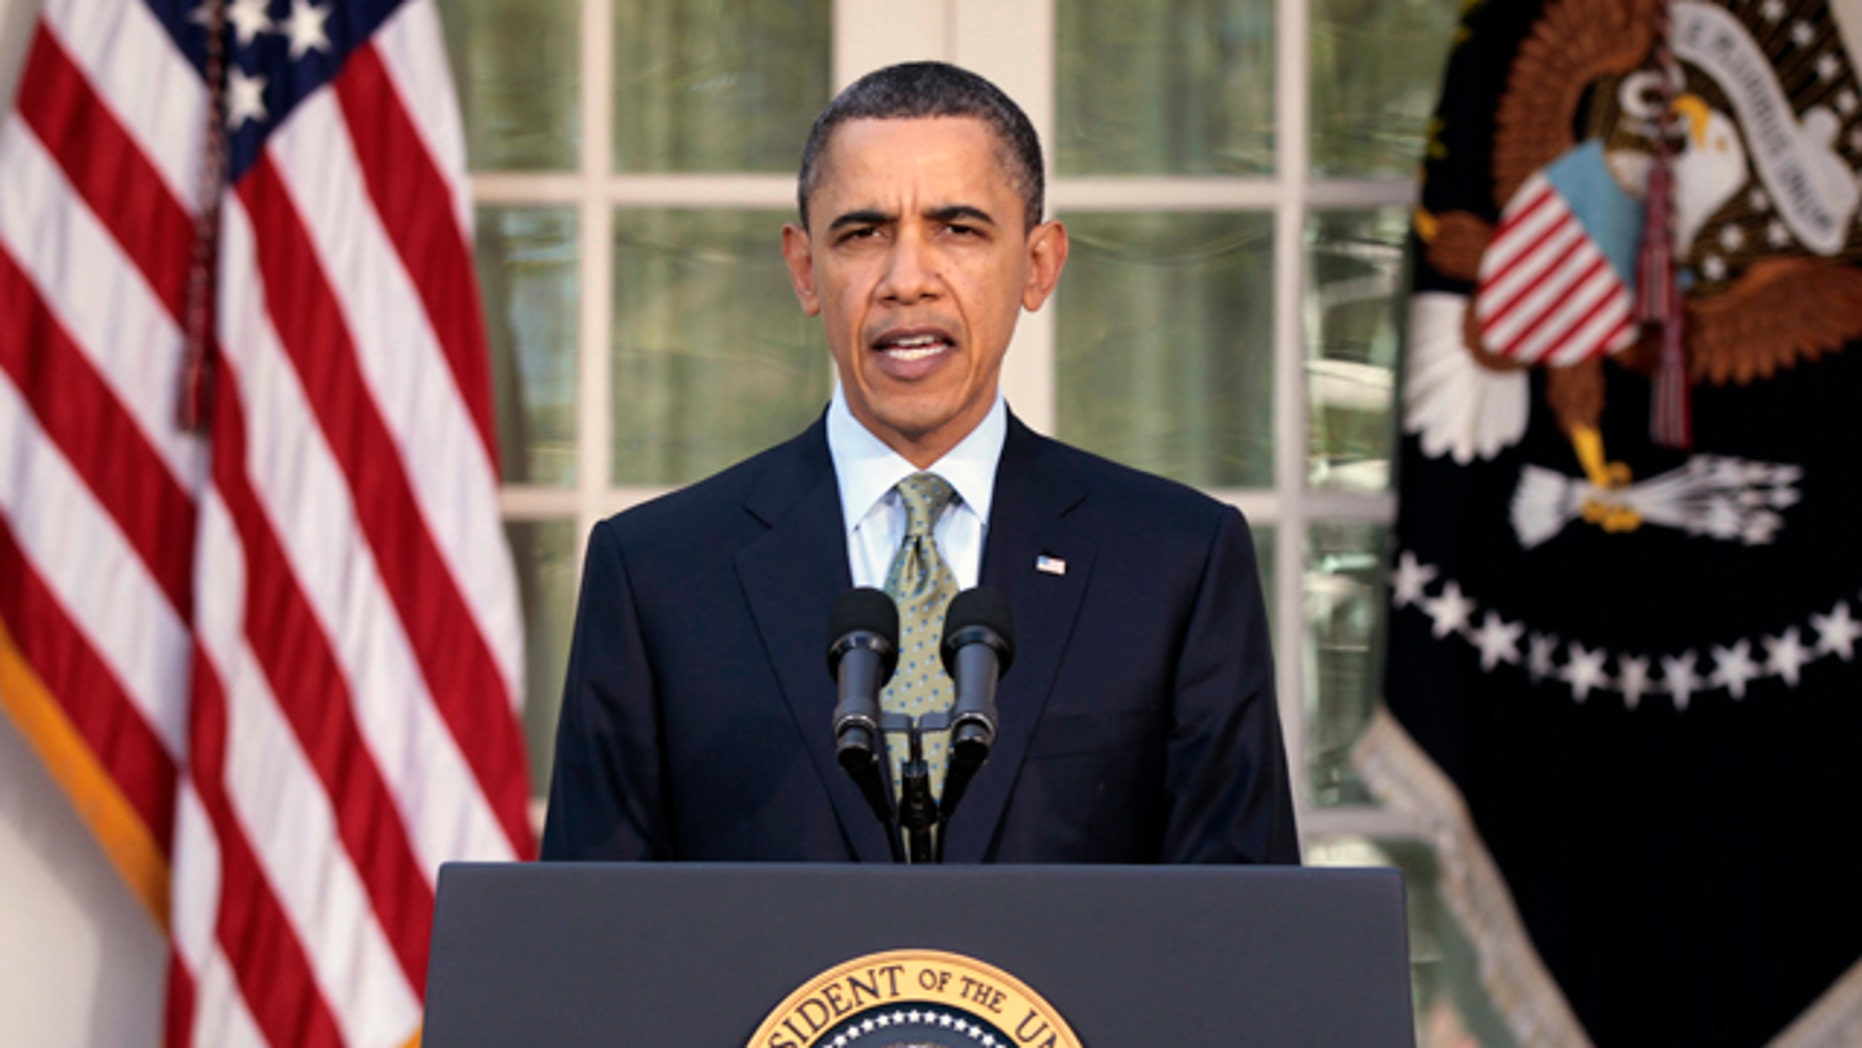 March 17: Obama makes a statement at the White House about Japan following last week's earthquake, tsunami, and subsequent nuclear concerns.